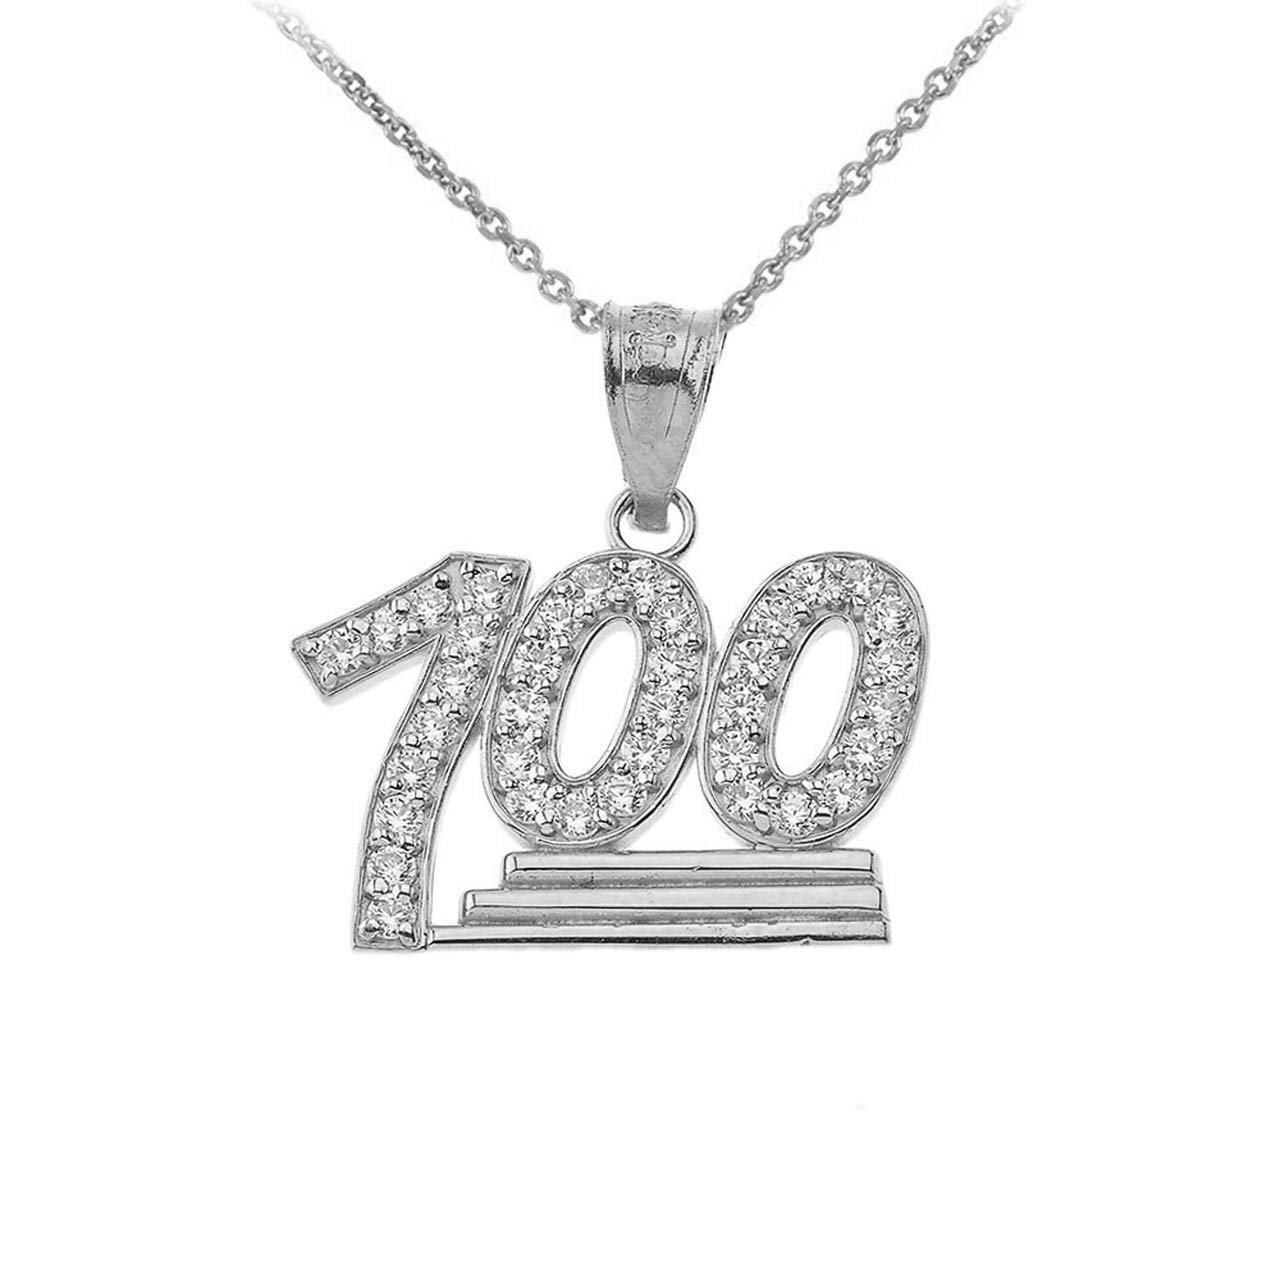 Fine 925 Sterling Silver Hip Hop Iced Out 100 Emoji Pendant Necklace with Cubic Zirconia